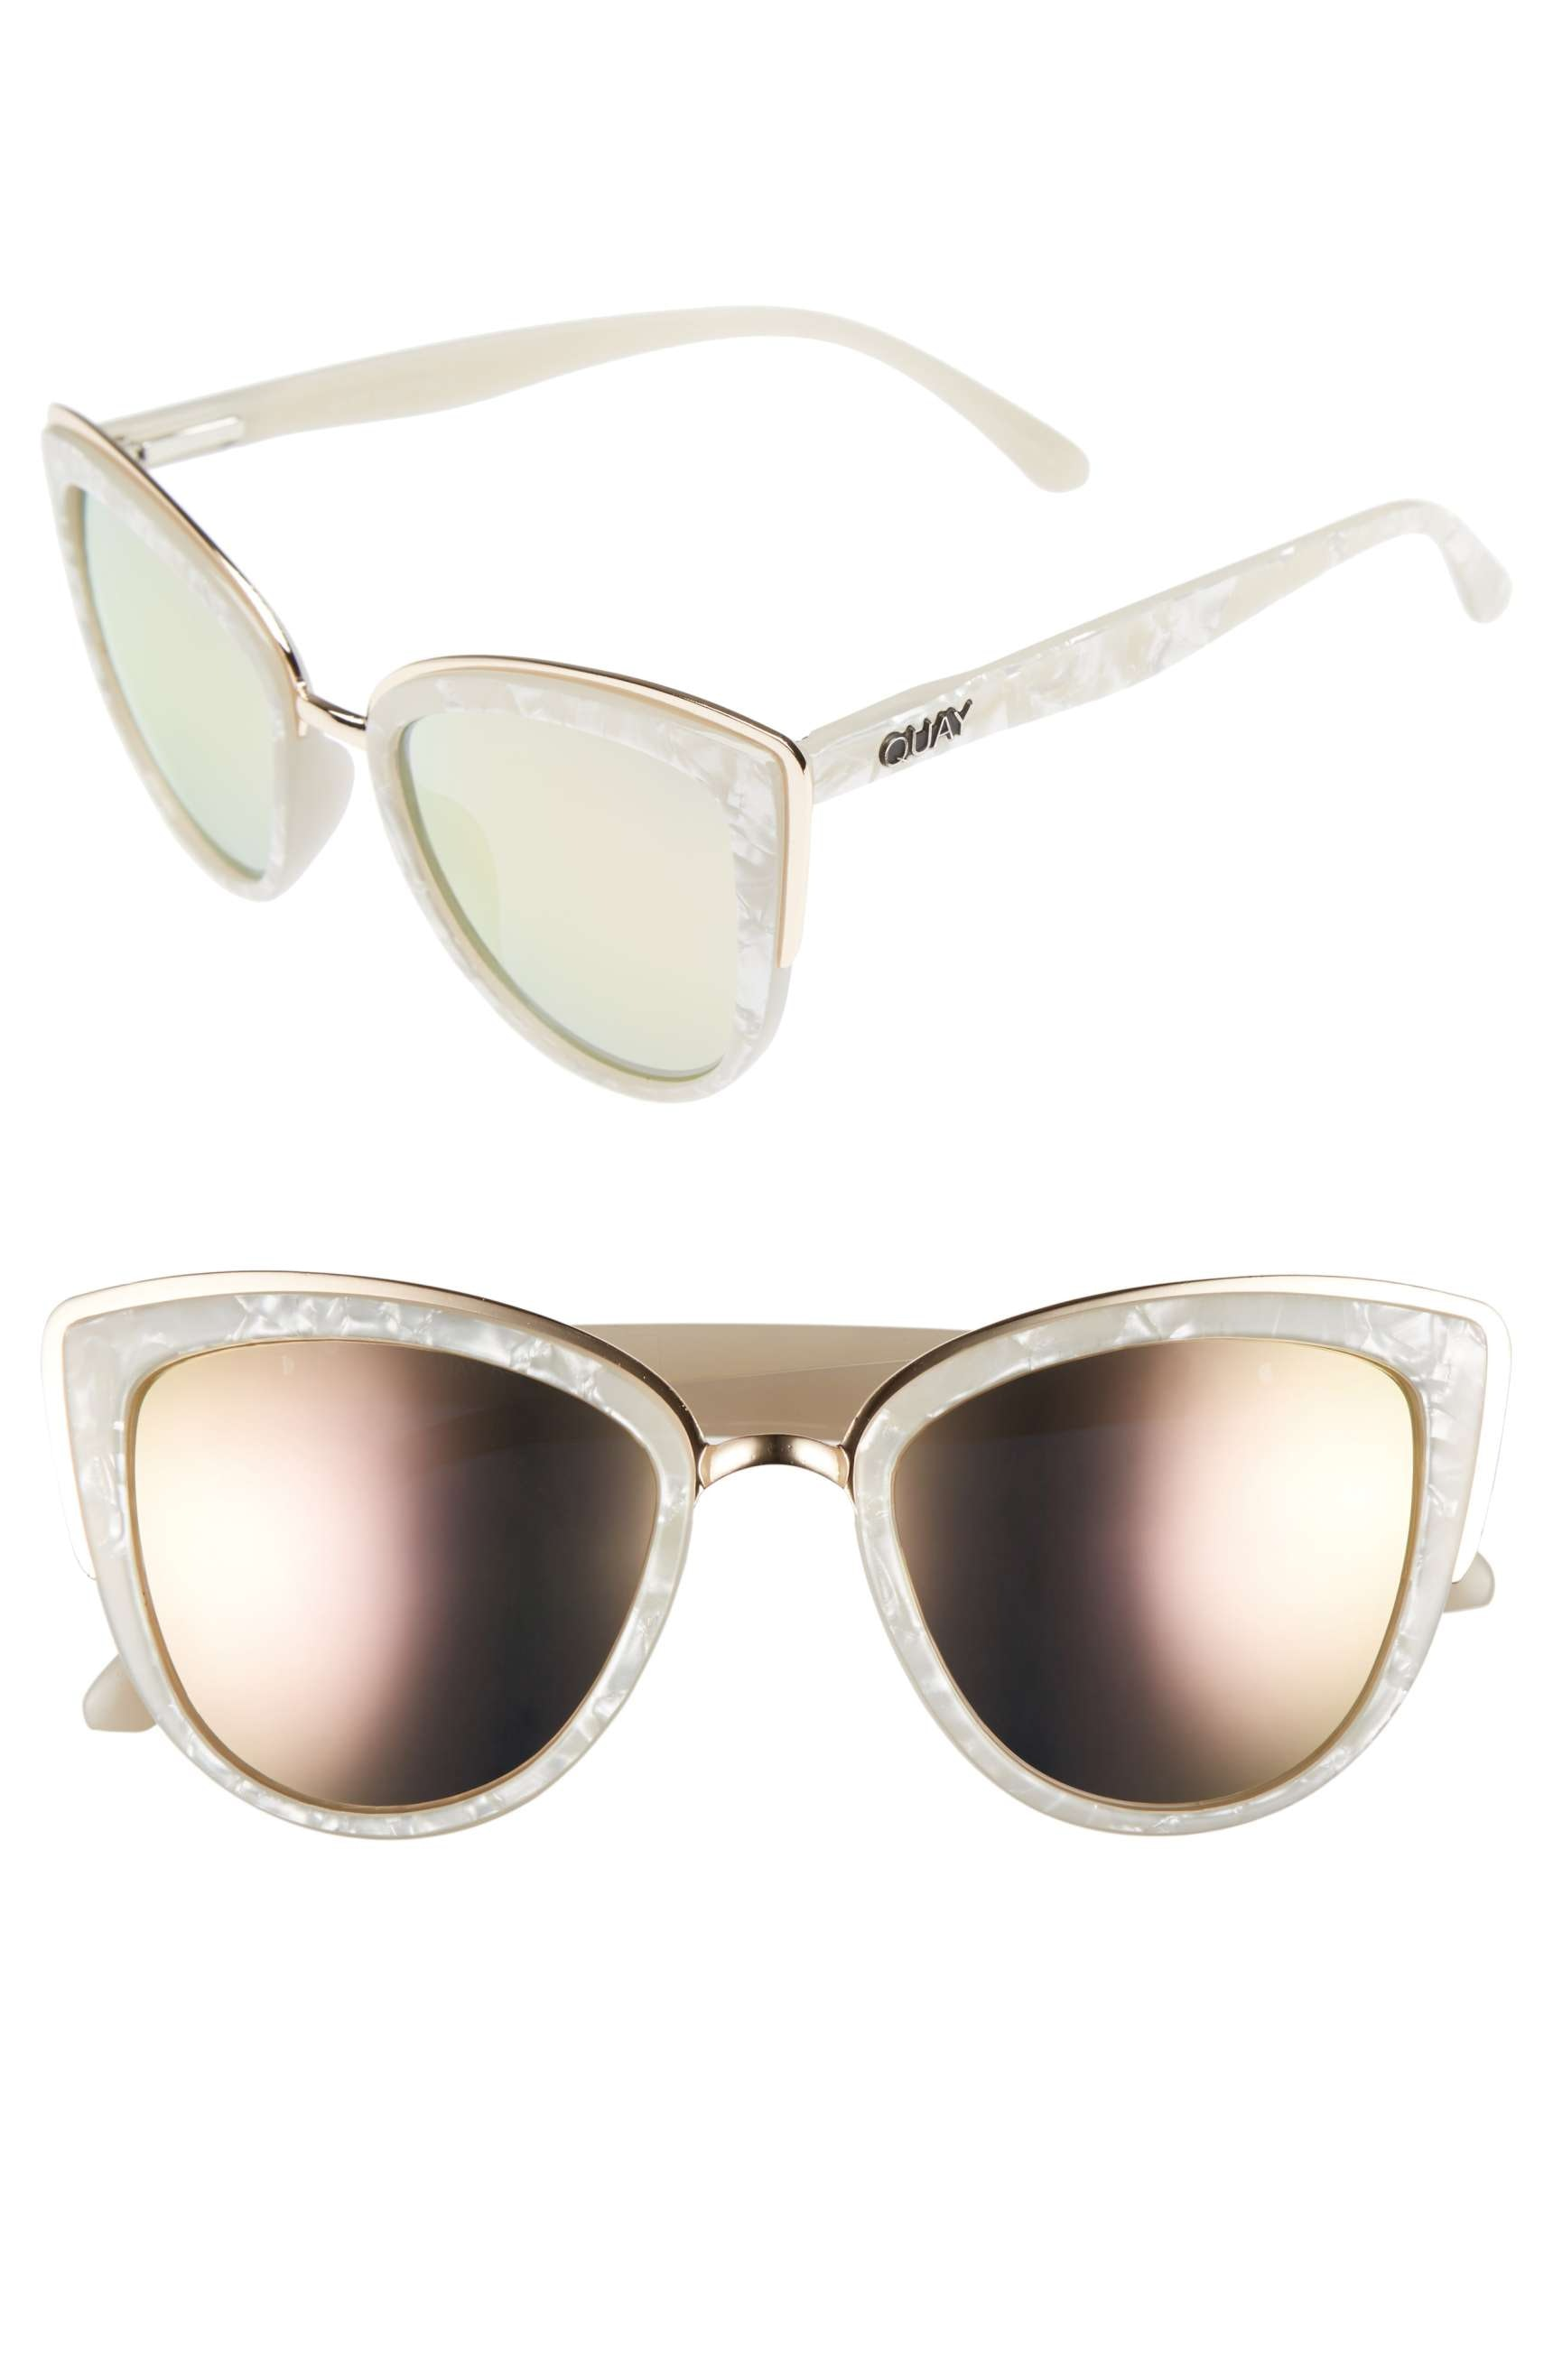 ef7c275644c Where To Buy Beyonce s Retro White Sunglasses For The Ultimate  End-Of-Summer Vibes